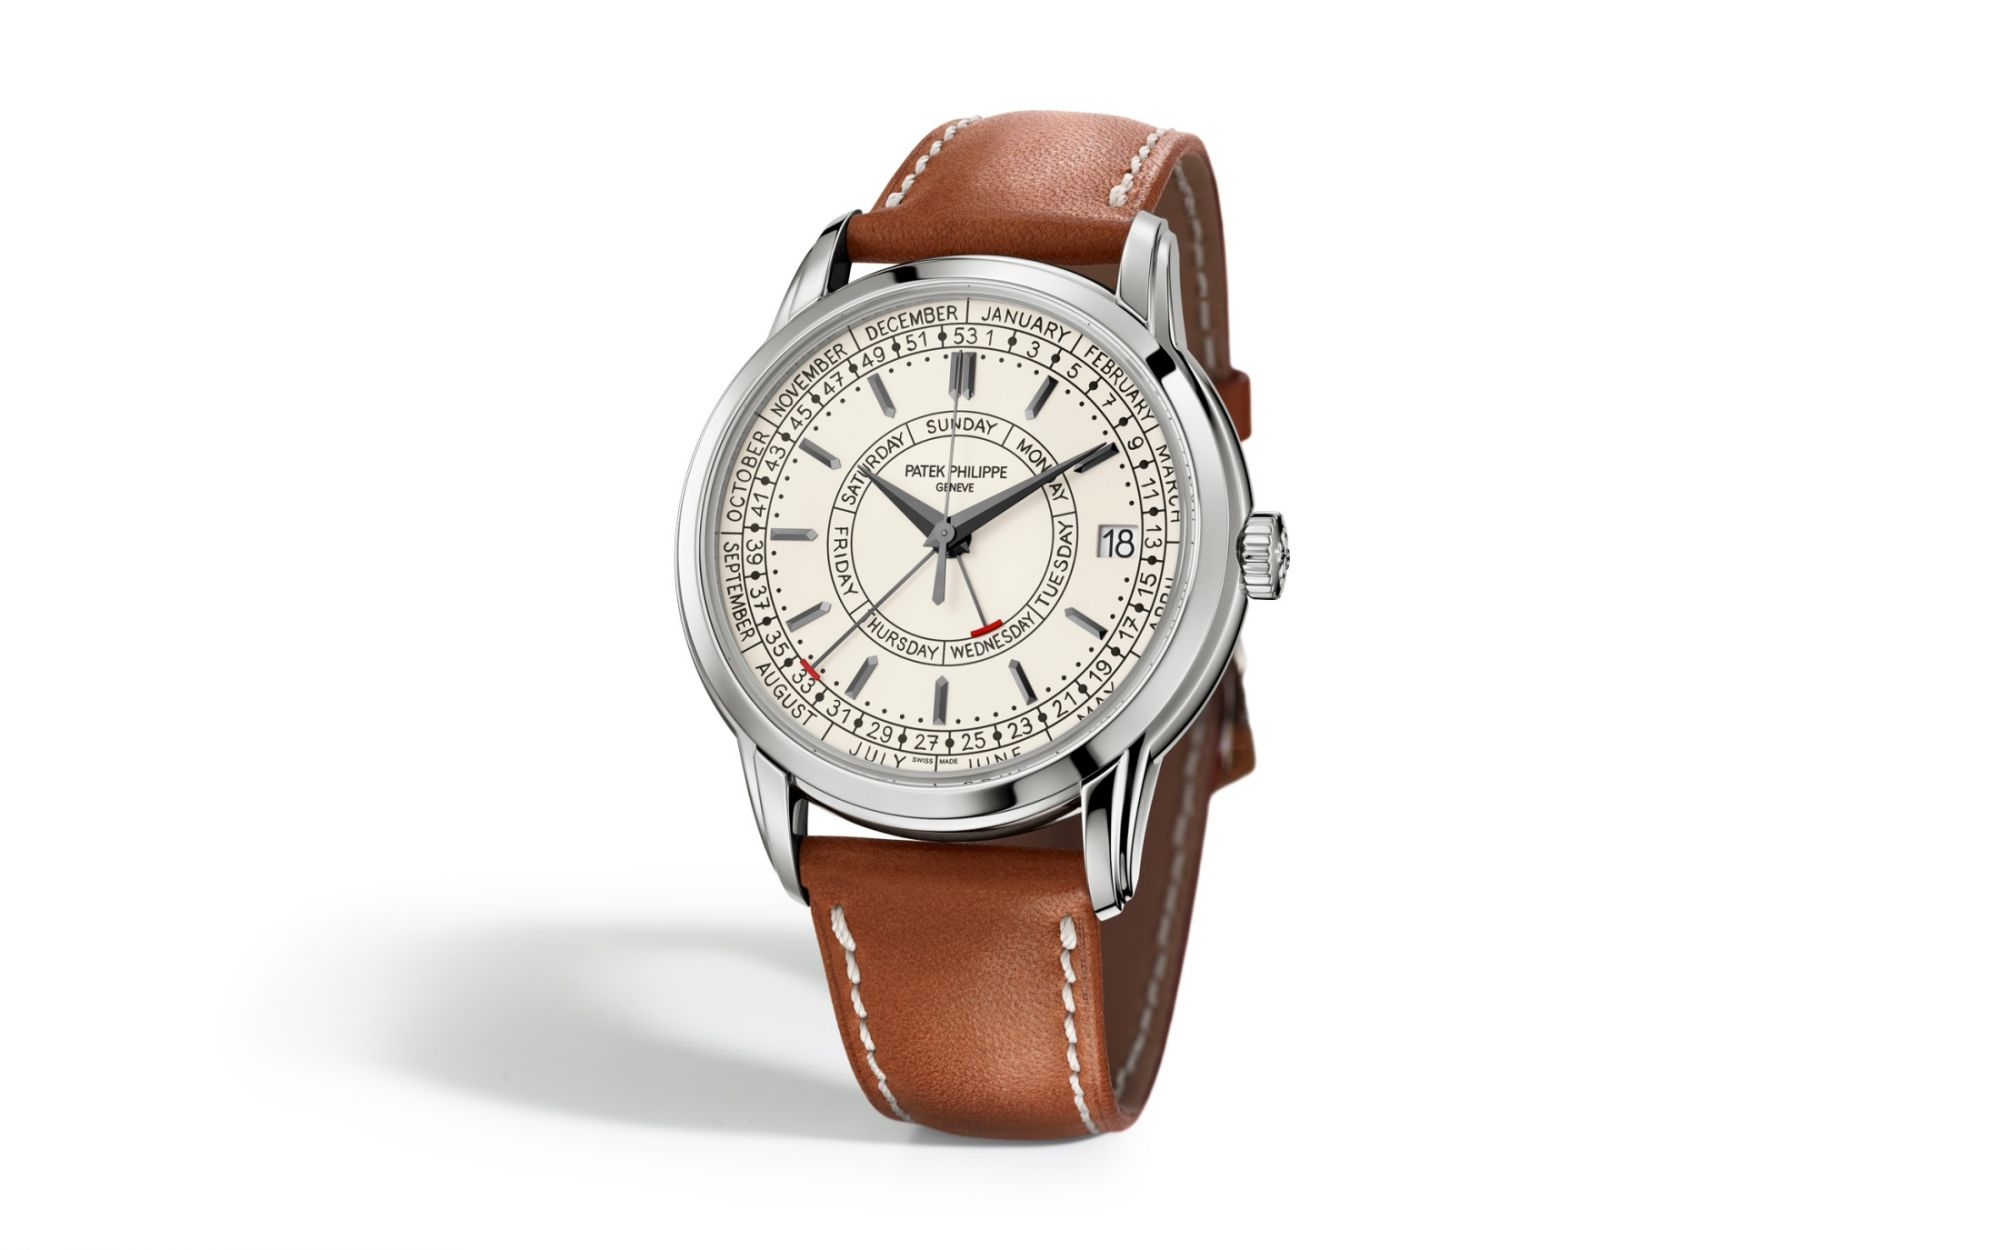 Patek Philippe Writes Its Own History With The Calatrava Weekly Calendar Ref 5212A Watch